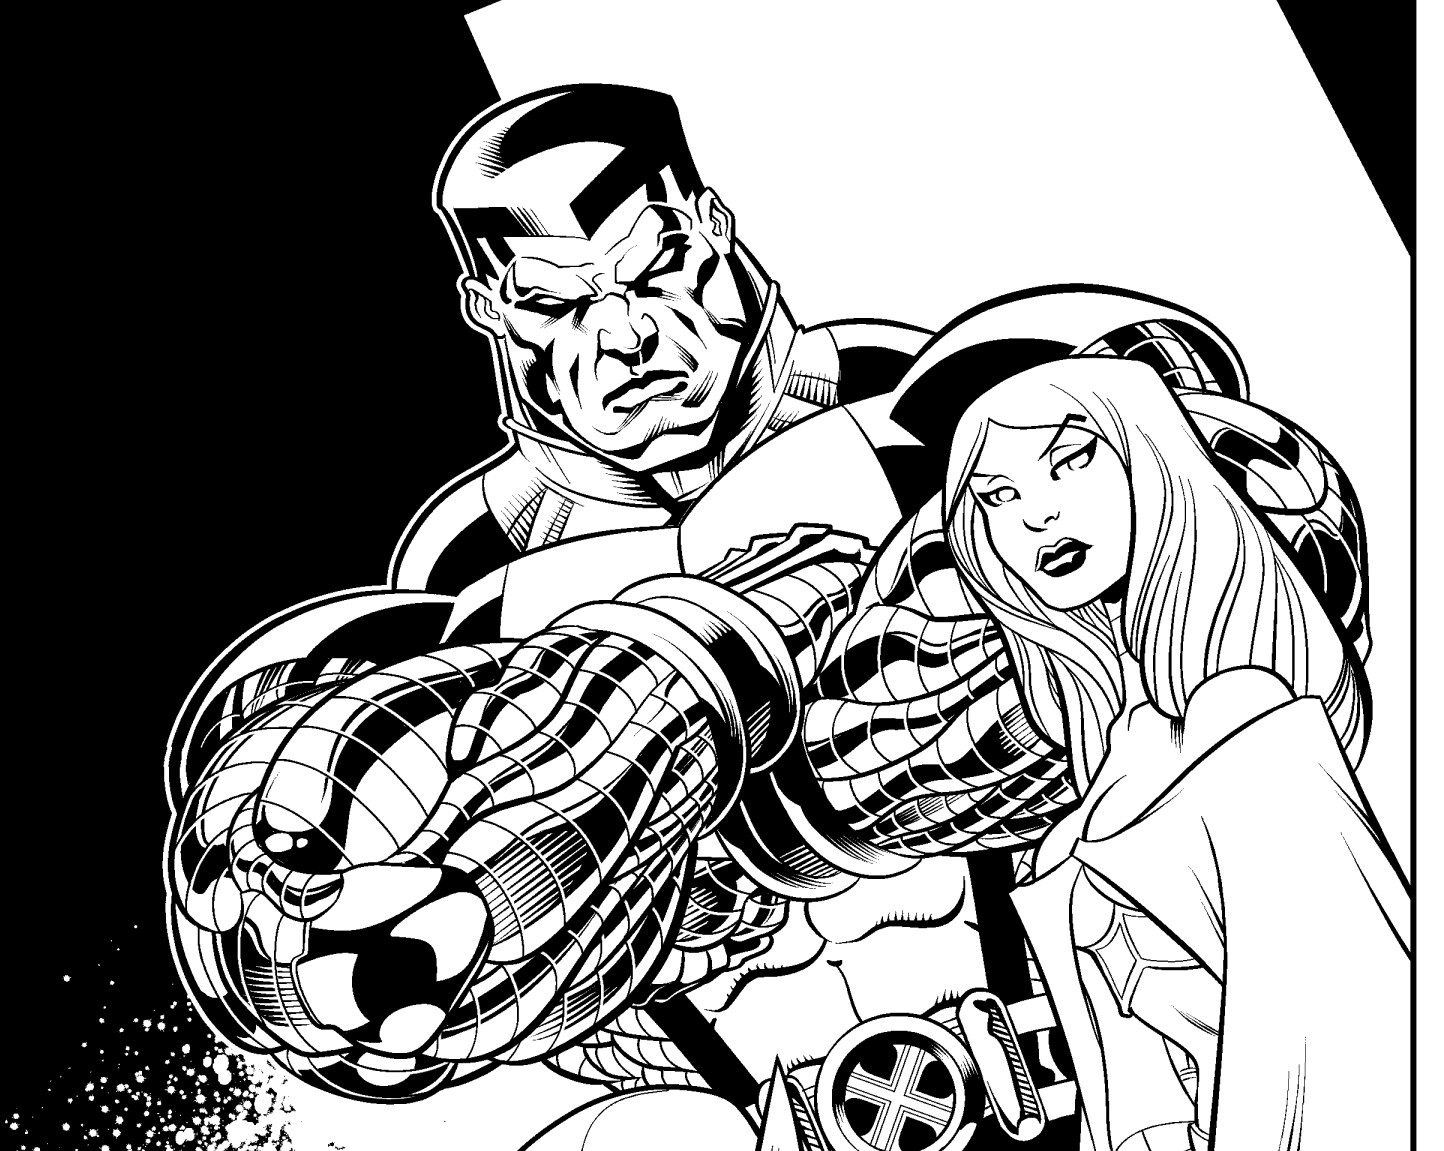 Tom martin mcguinness wolverine emma frost colossus detail